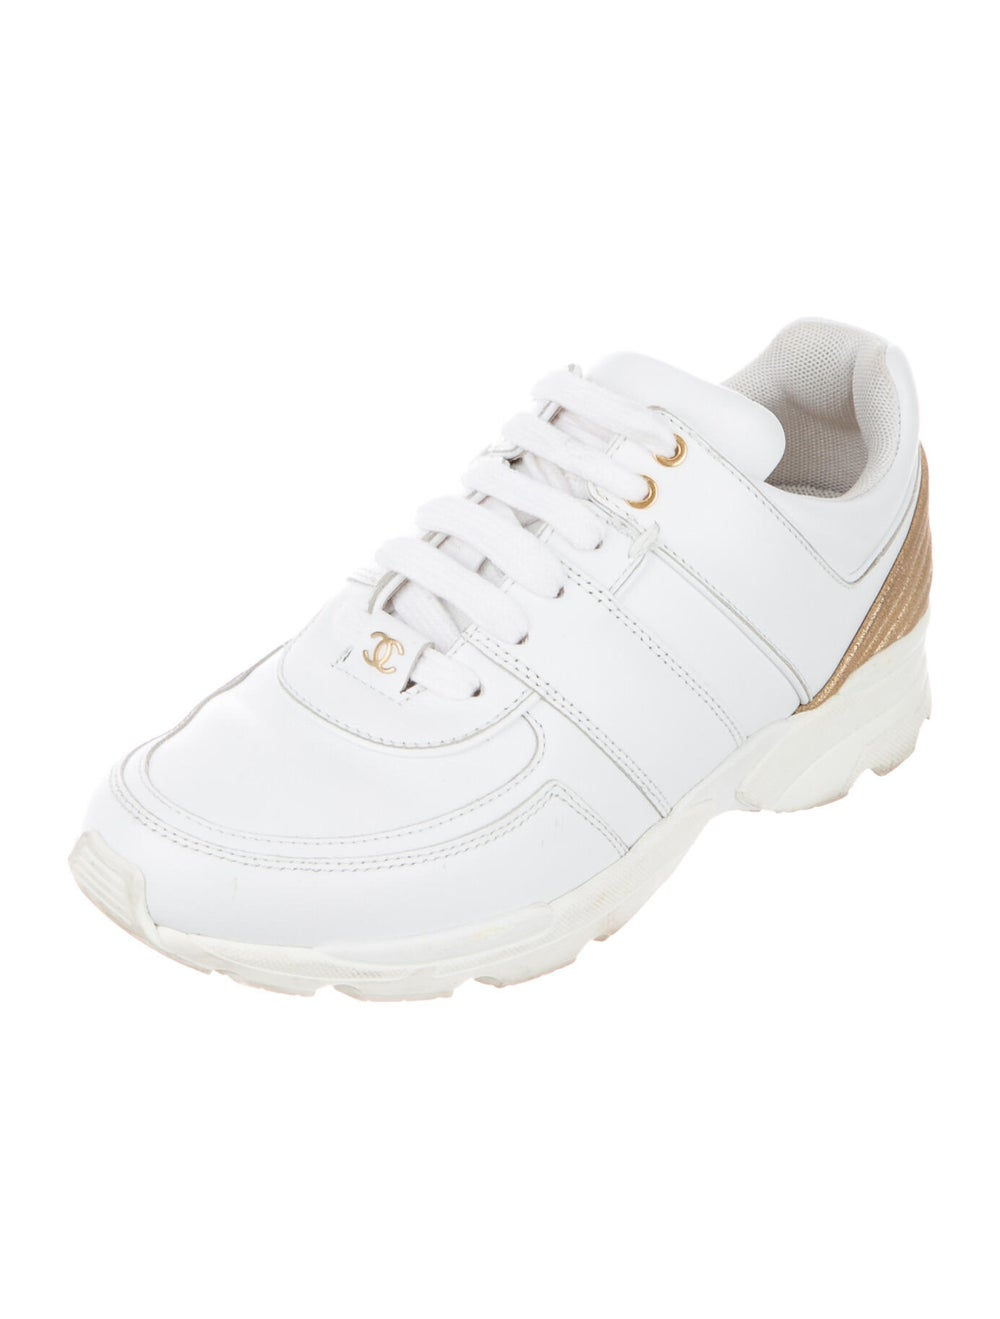 Chanel CC Low-Top Sneakers Sneakers White - image 2